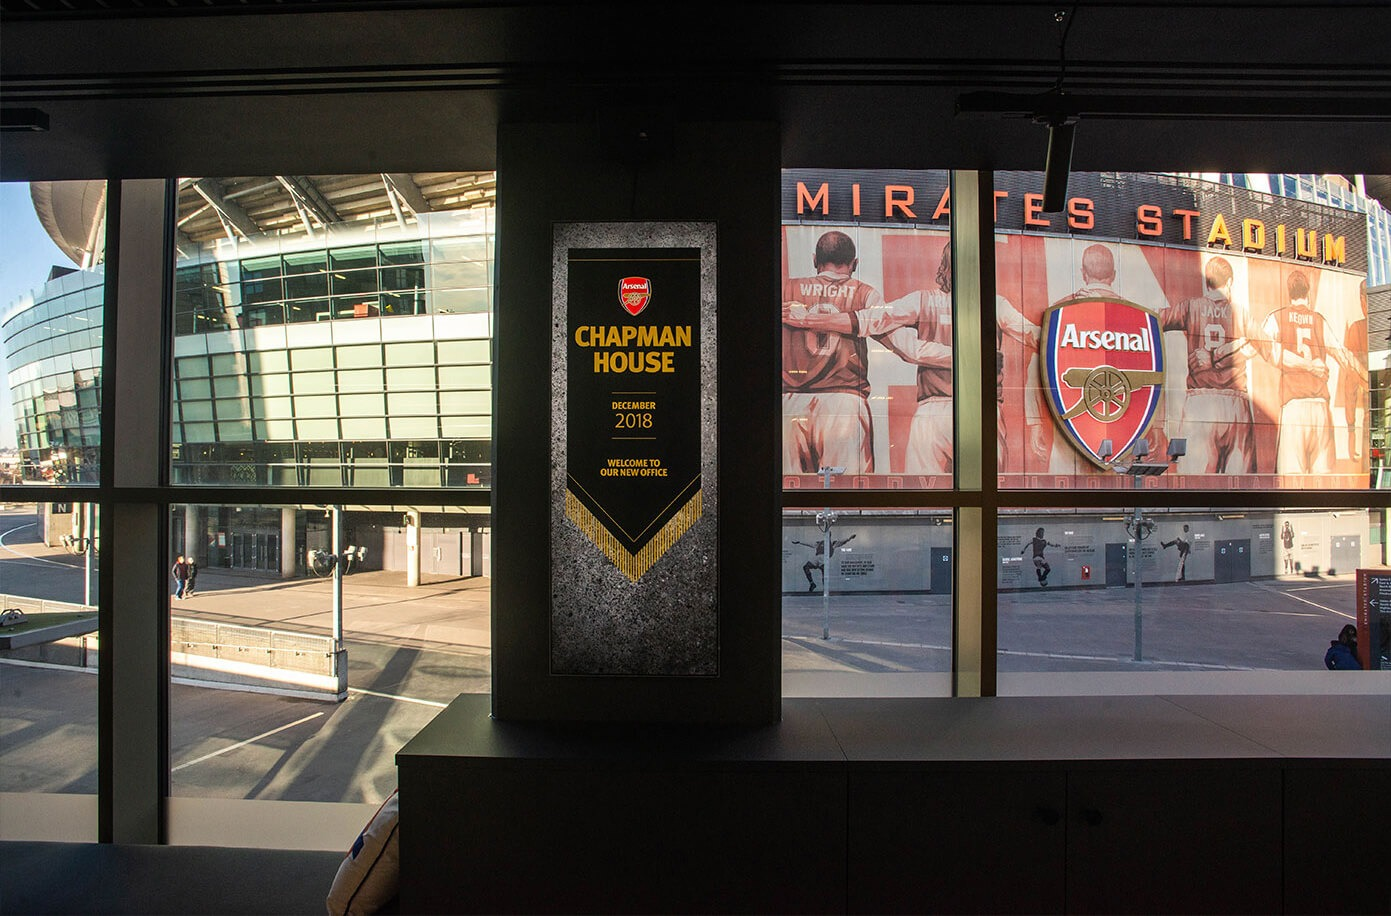 Arsenal FC – Chapmans House